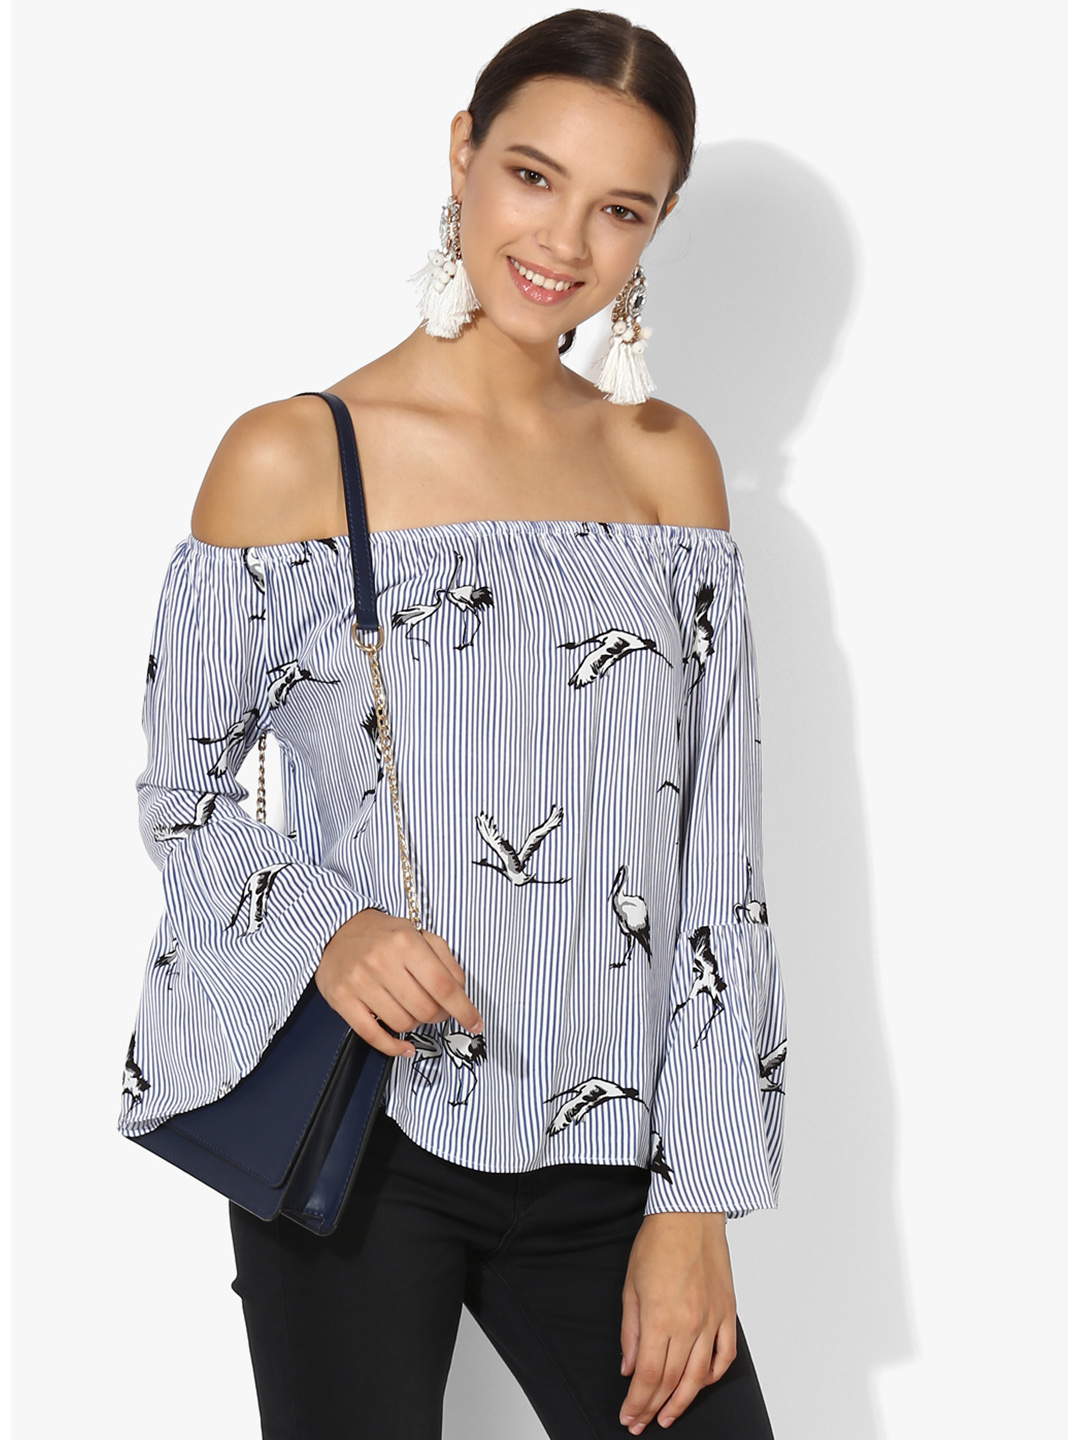 16bbb9f7ef821 Deal off shoulder casual wear top - G3-WTO0710